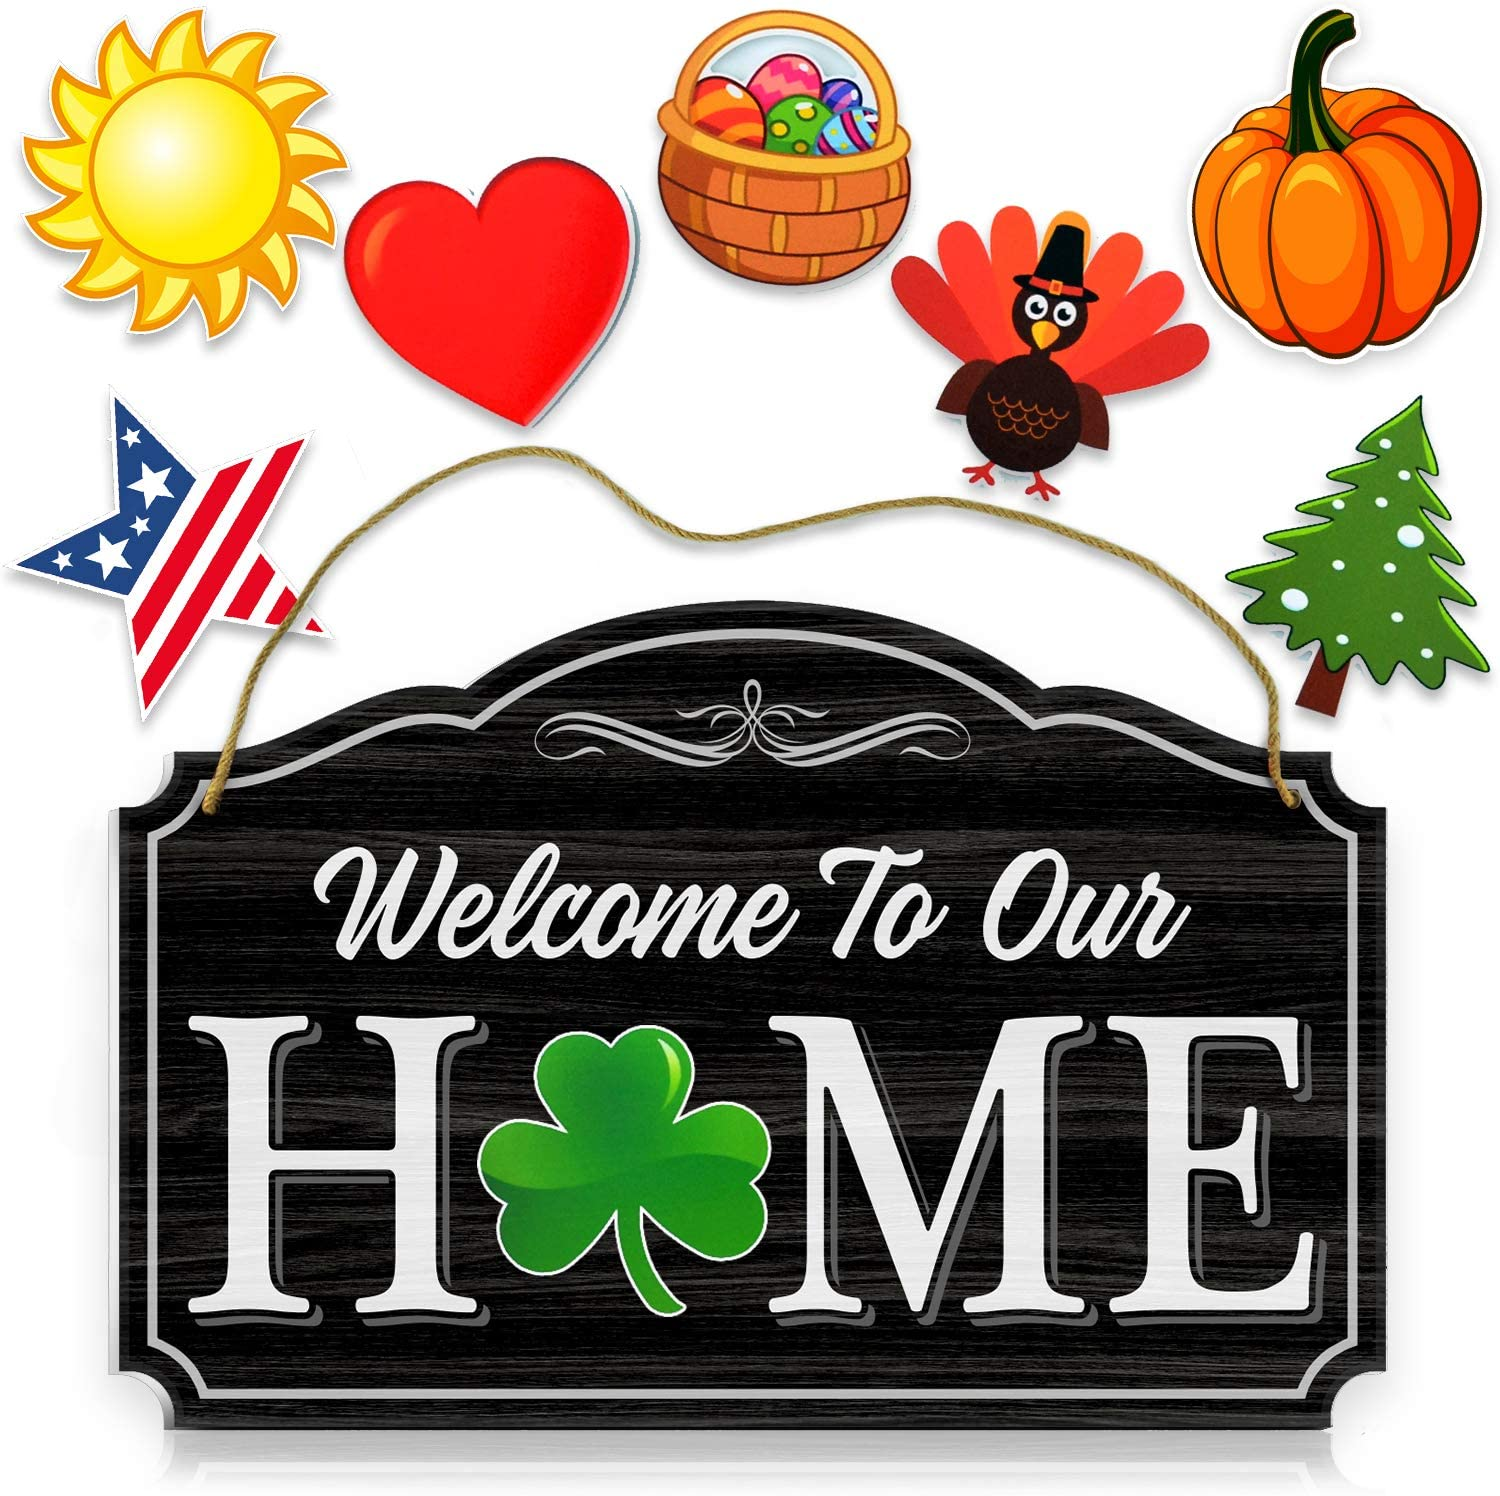 Bigtime Signs Wel e to Our Home Wood Grain Print Door & Wall Decor 8 Interchangeable Holiday Magnets Halloween Easter Fall Christmas